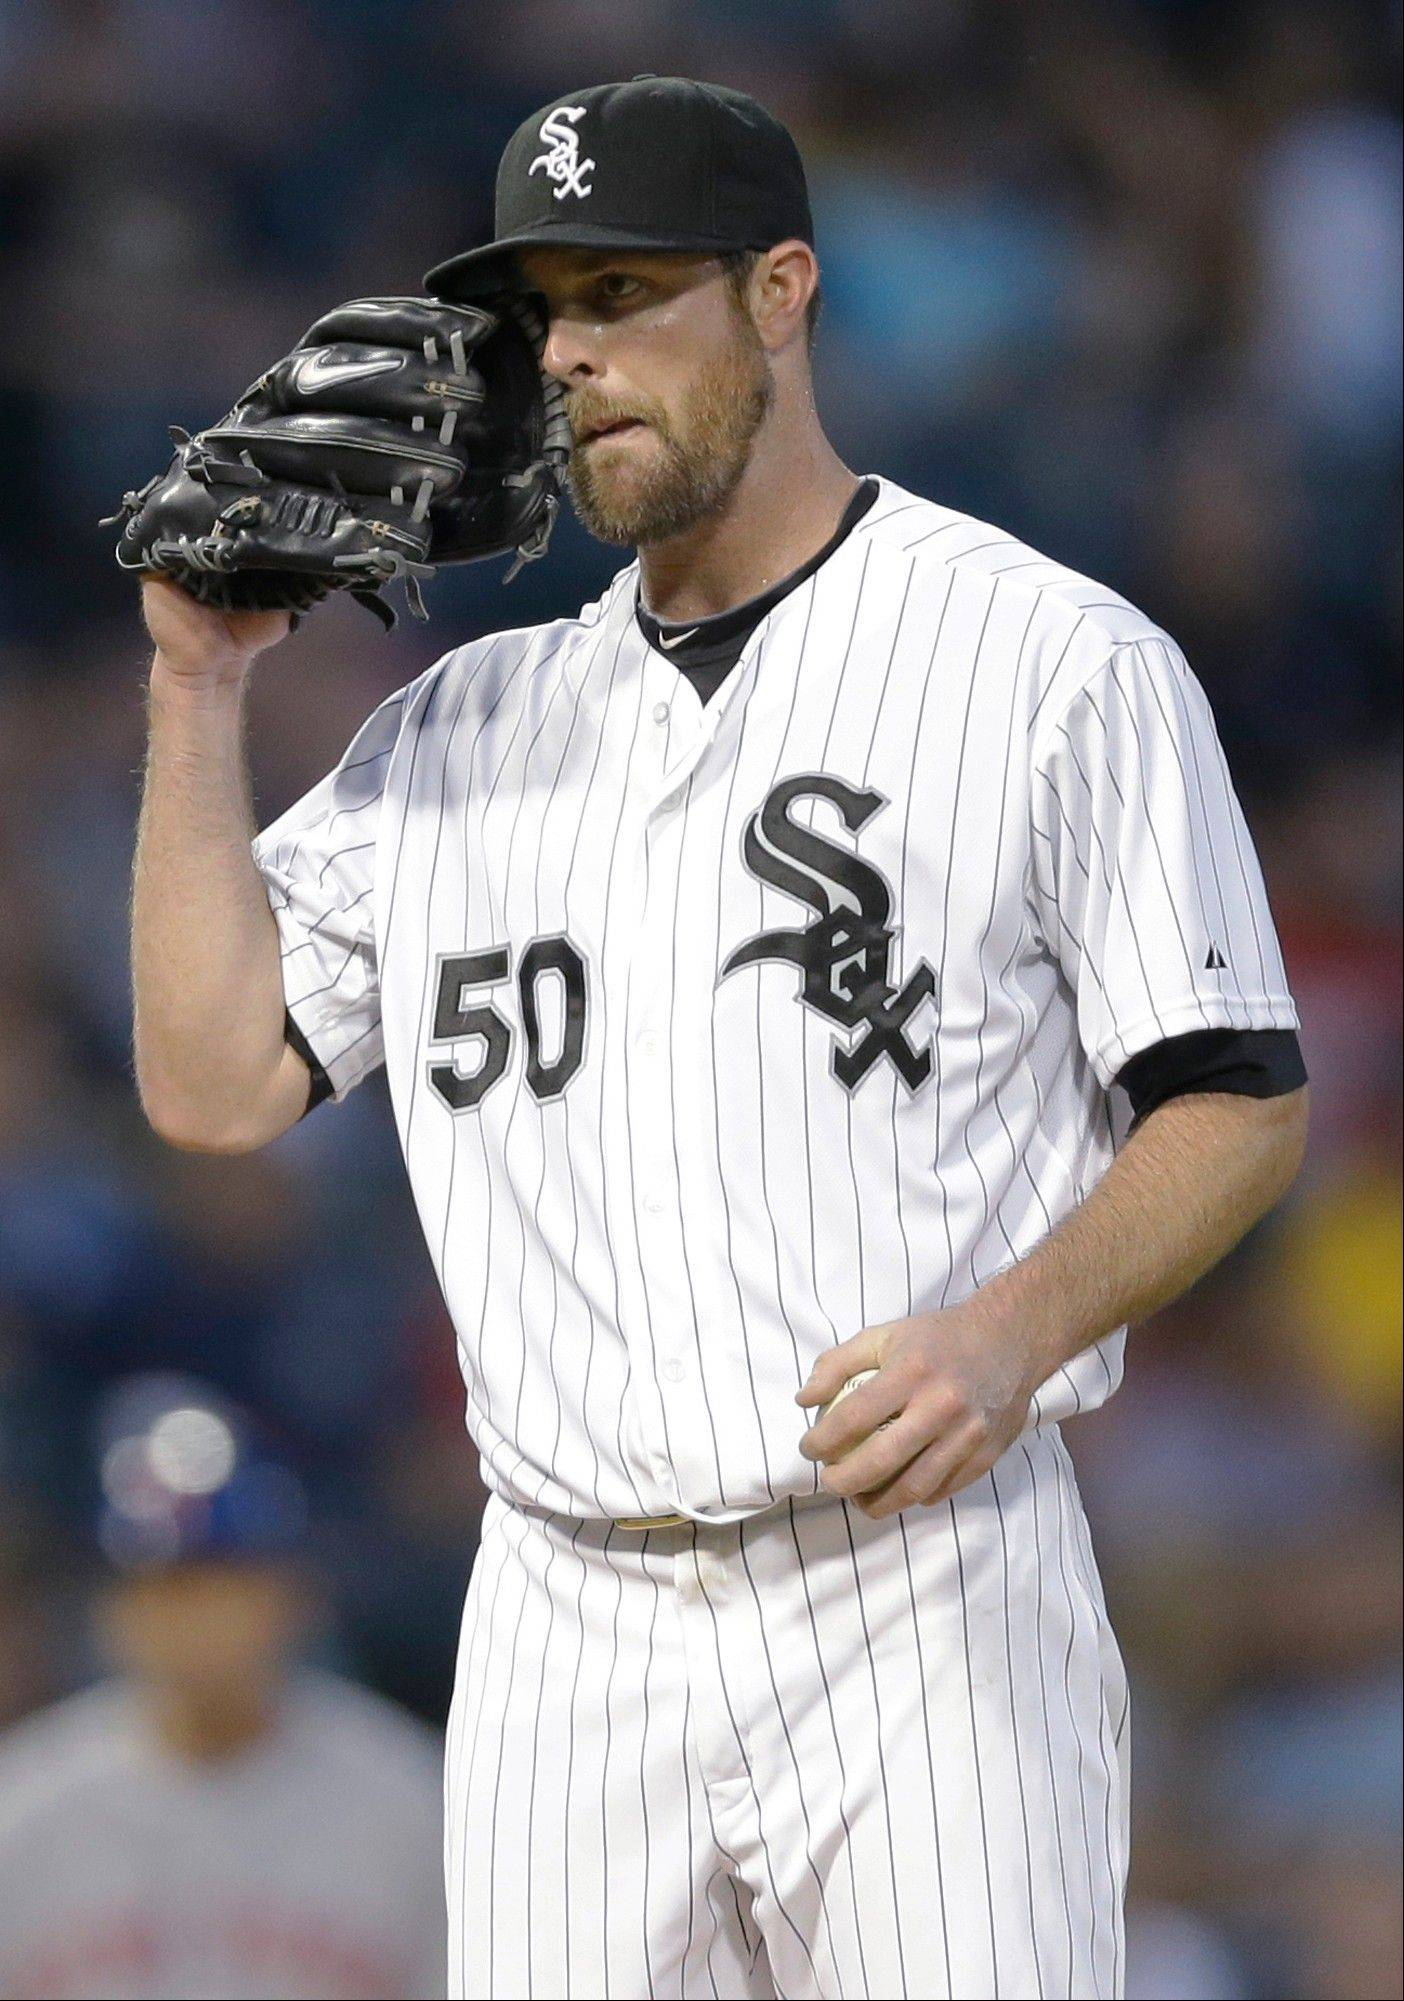 White Sox starter John Danks wipes his face after New York Mets' Eric Young Jr. hit an RBI single during the fifth inning of an interleague baseball game Wednesday, June 26, 2013, in Chicago.